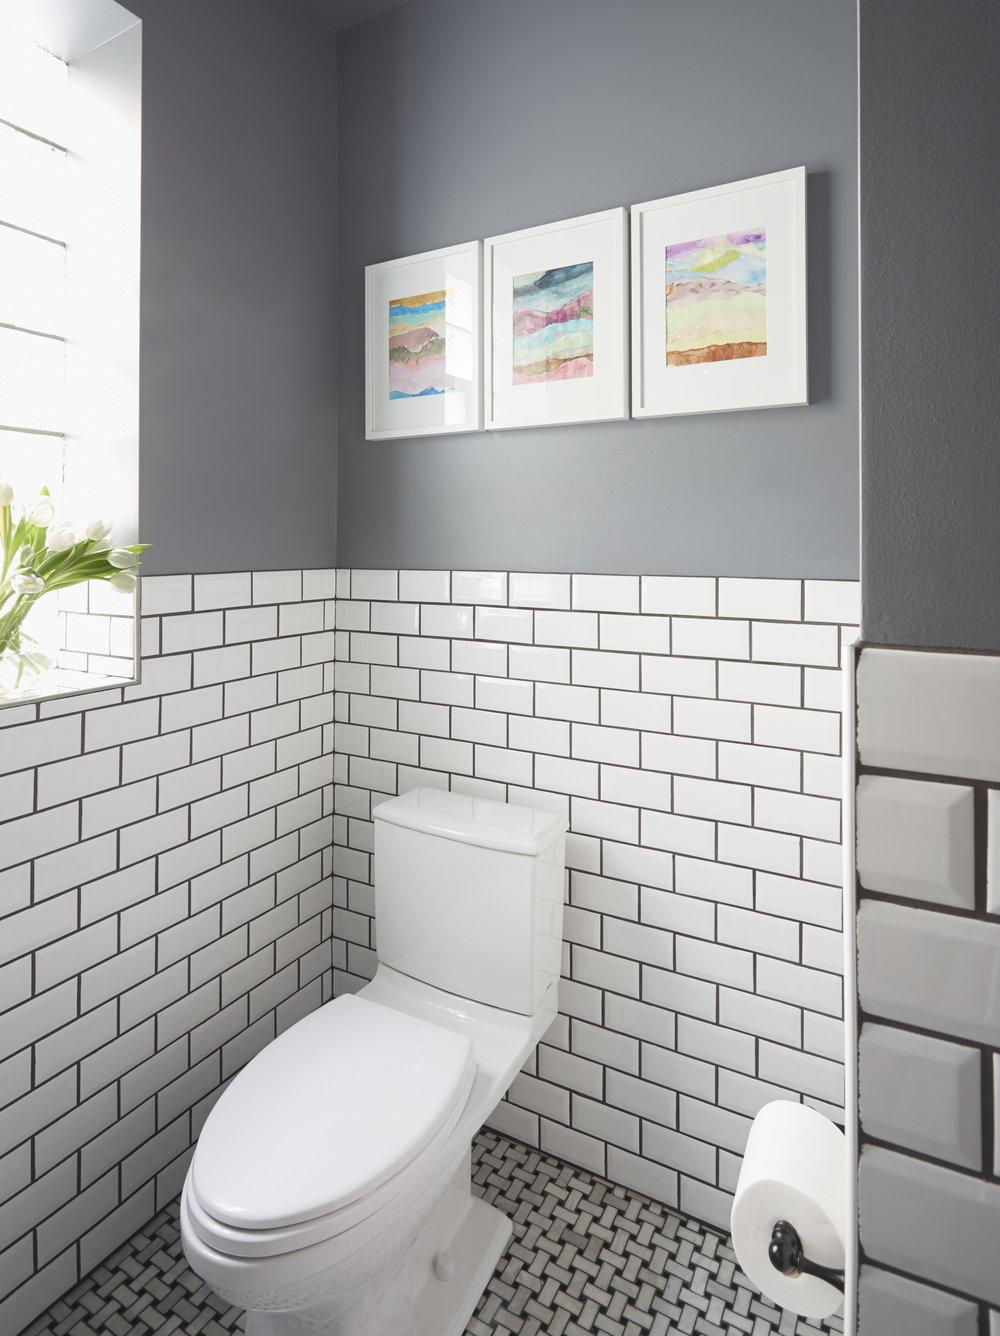 Tile wainscot floor and decorations catalogue floor and the client files the powder room you never have to renovate again the classic marble basketweave shiifo